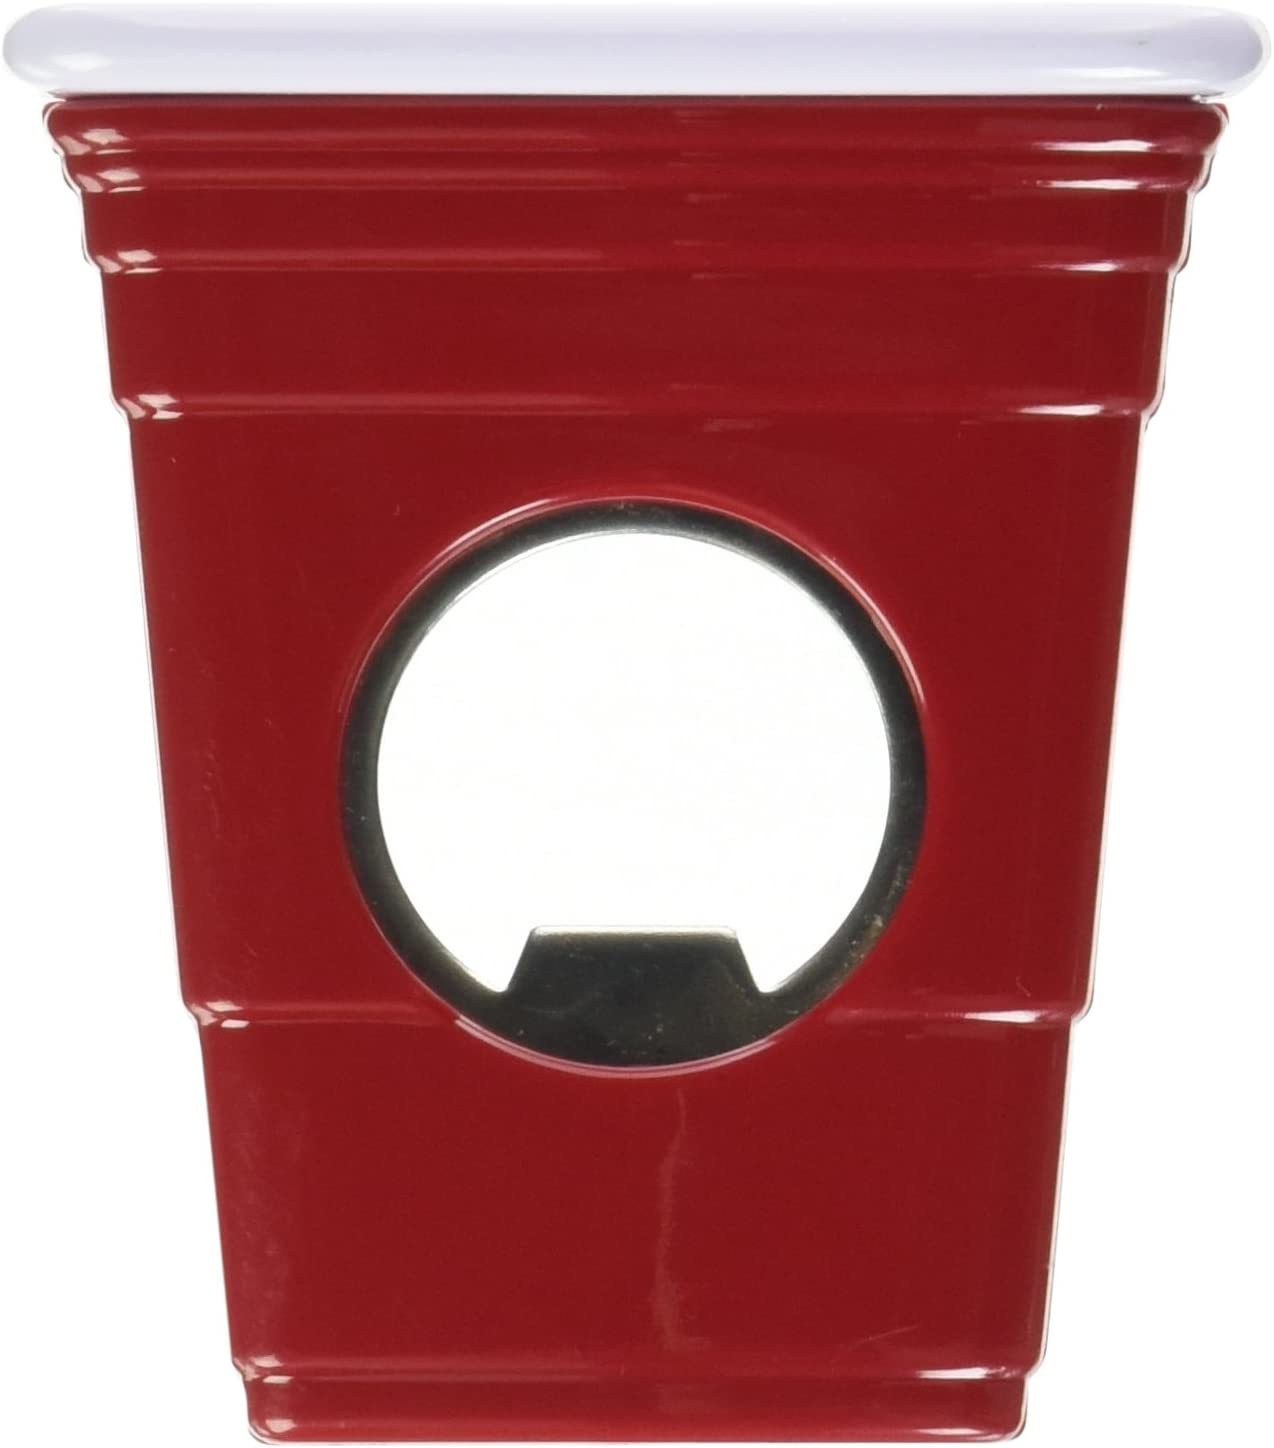 8.1-10.0 Red Cup Living 4548 Magnetic Bottle Slim Opener Red